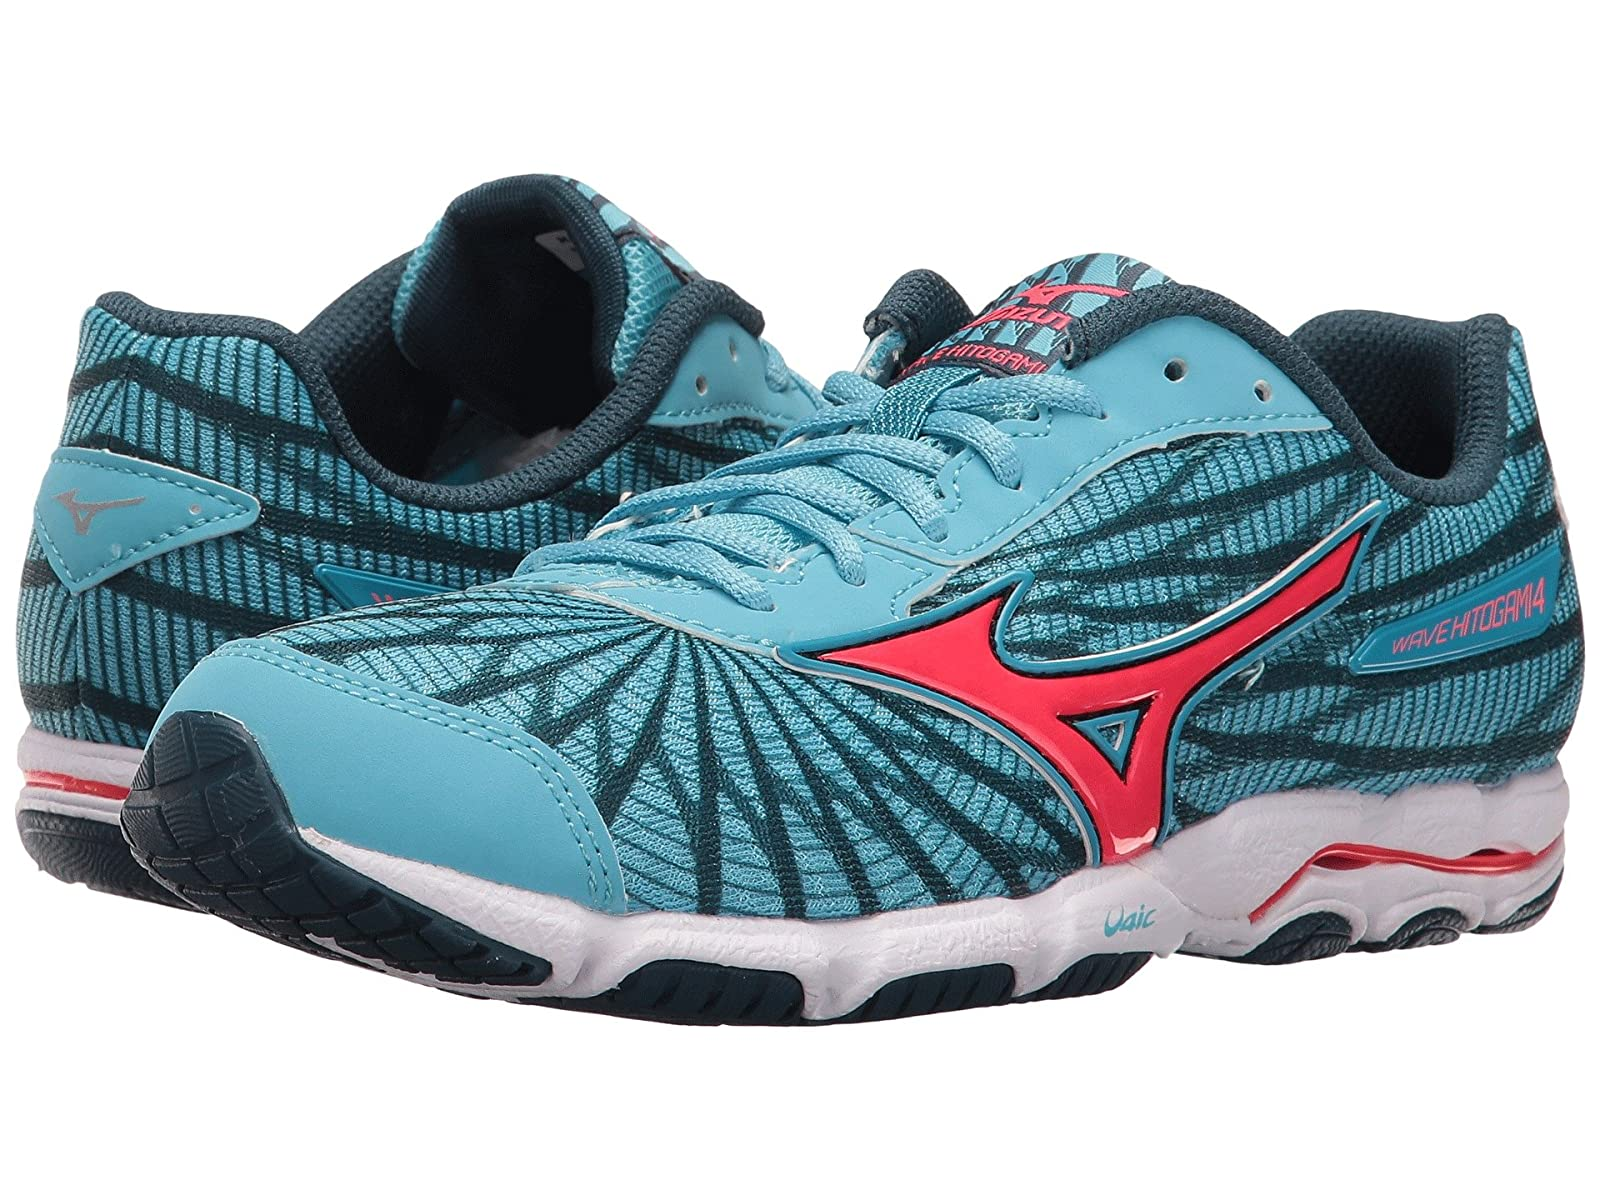 Mizuno Wave Hitogami 4Cheap and distinctive eye-catching shoes